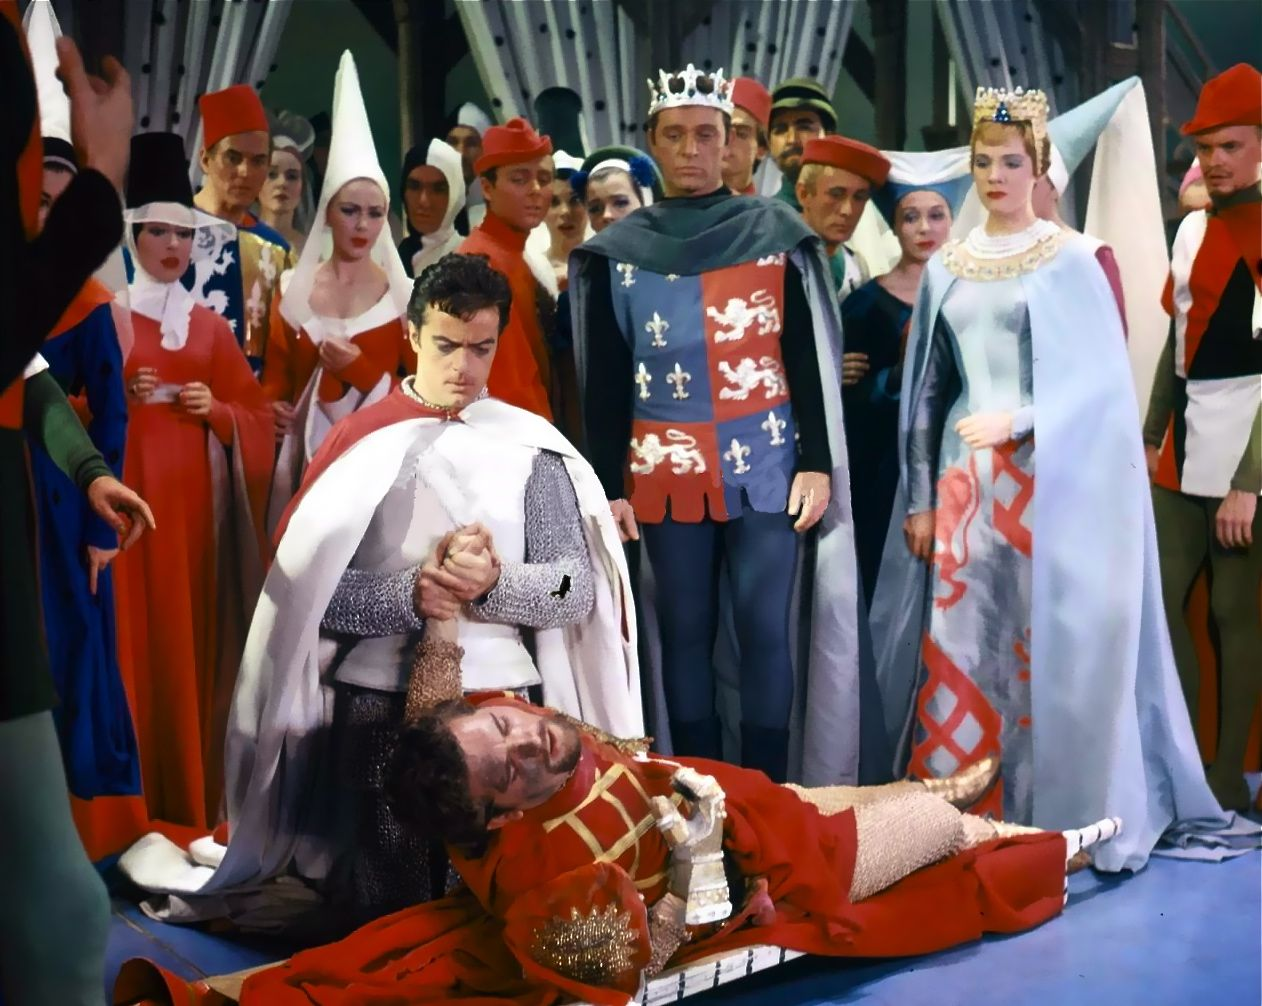 1960 Julie Andrews, Richard Burton and Robert Goulet in the original Broadway production of Camelot.